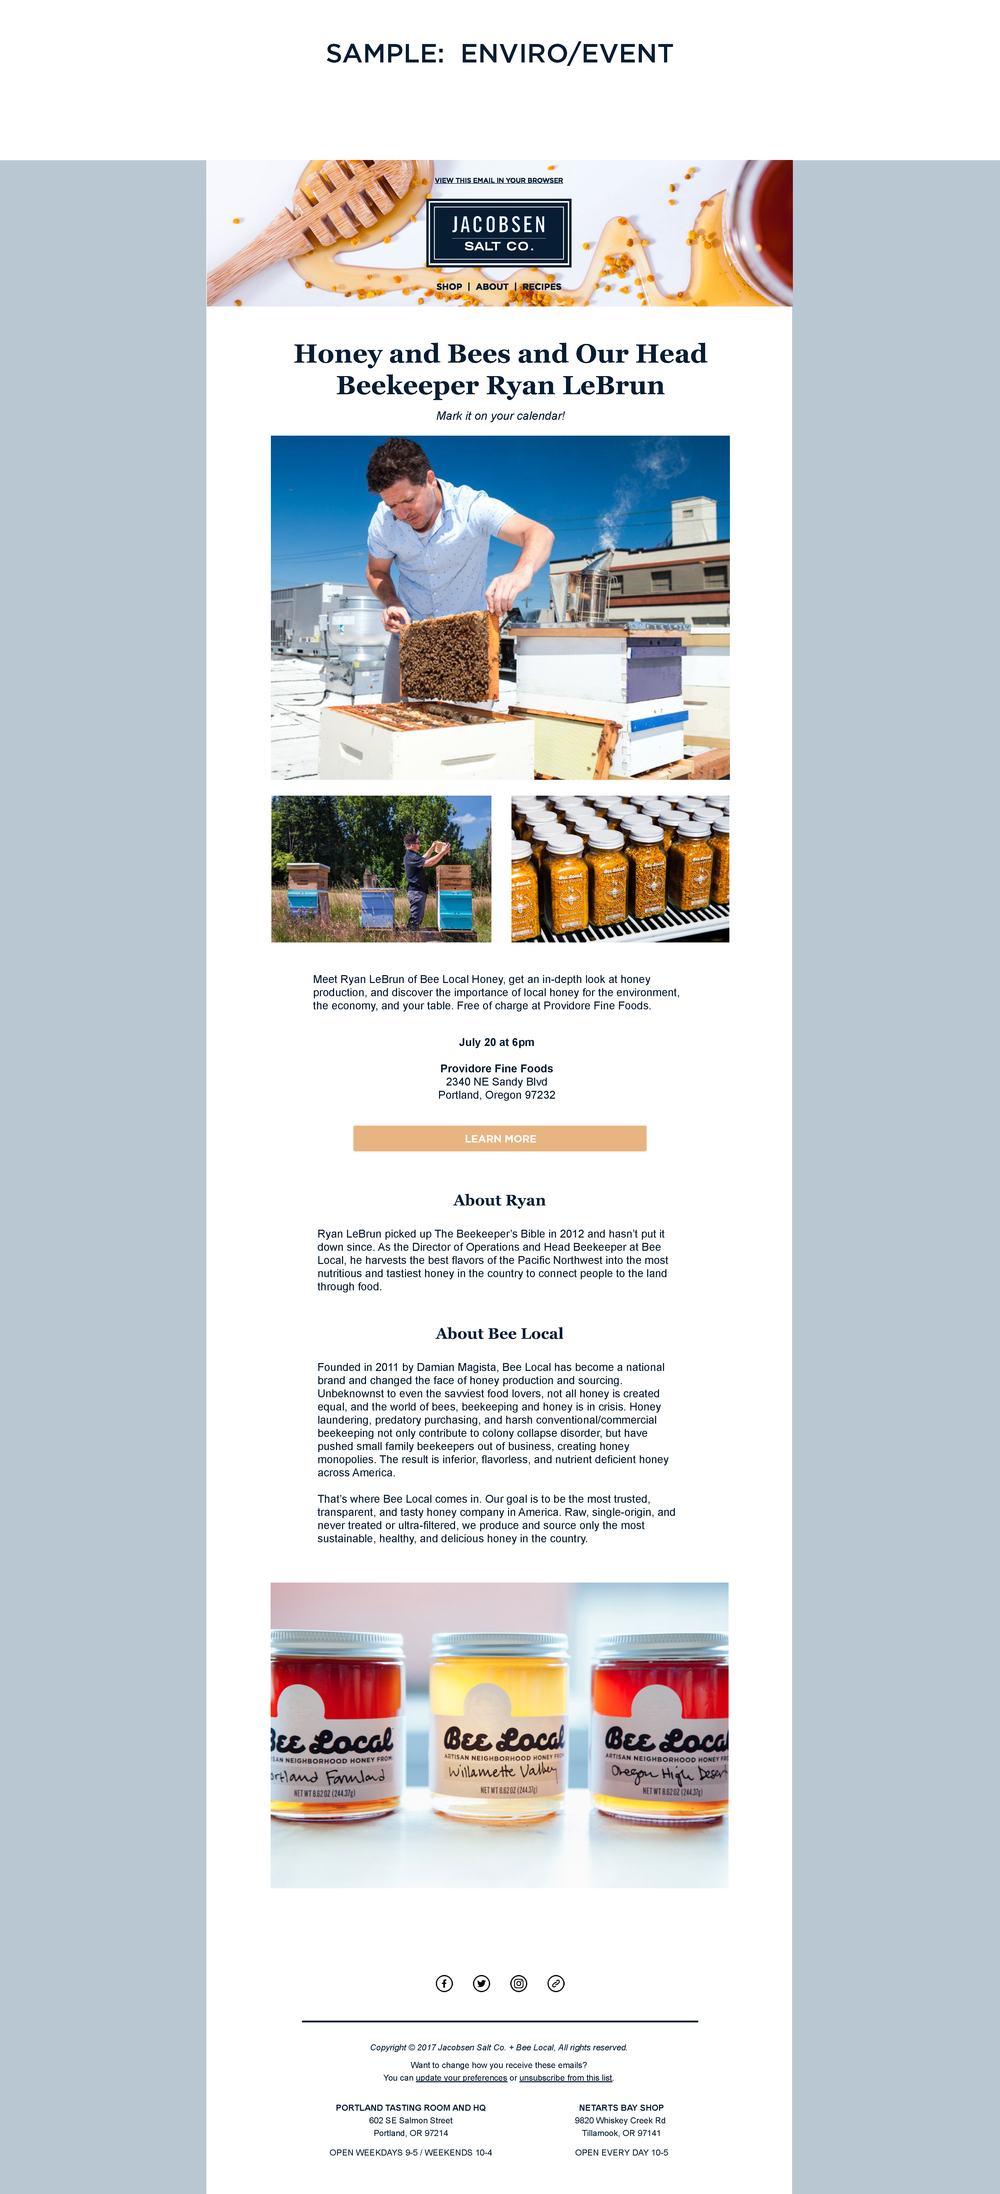 Email newsletter templates_Page_3.png